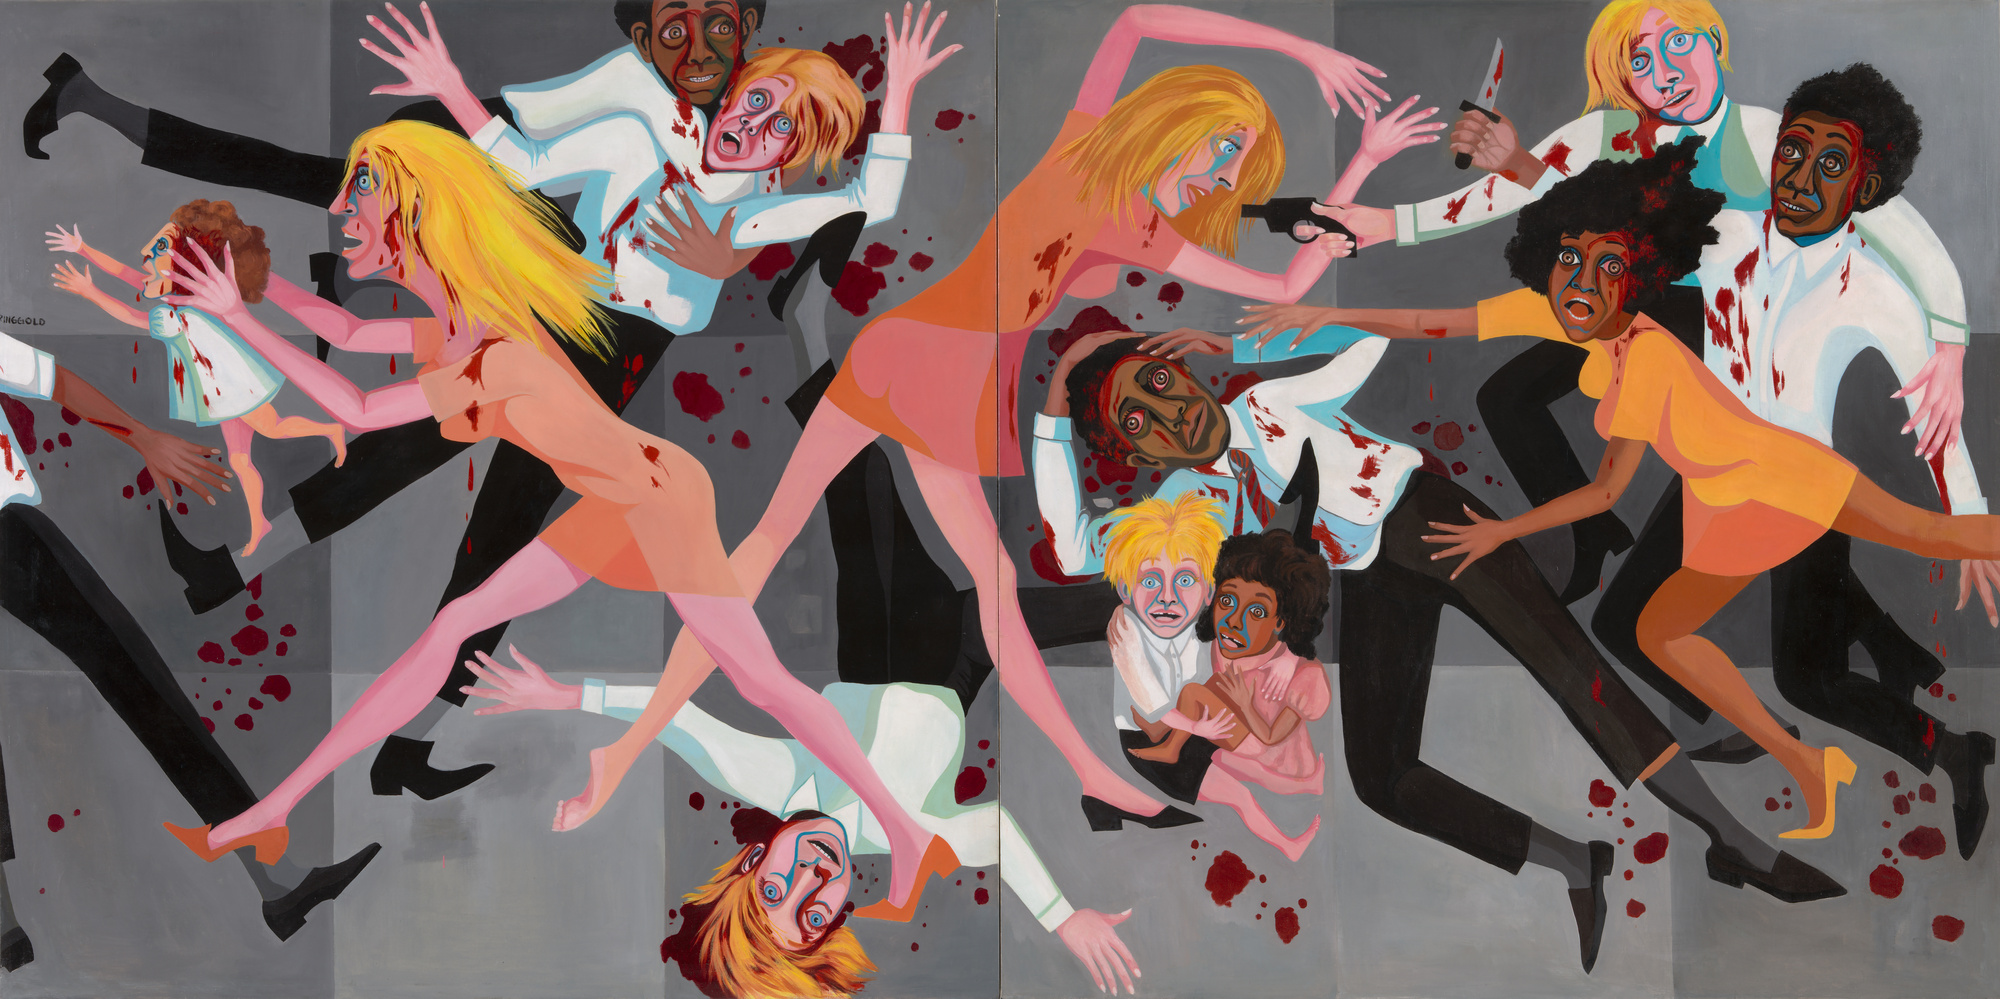 "Faith Ringgold. _American People Series #20: Die_. 1967. Oil on canvas, two panels. 72 × 144"" (182.9 × 365.8 cm). Acquired through the generosity of The Modern Women's Fund, Ronnie F. Heyman, Eva and Glenn Dubin, Lonti Ebers, Michael S. Ovitz, Daniel and Brett Sundheim, and Gary and Karen Winnick"